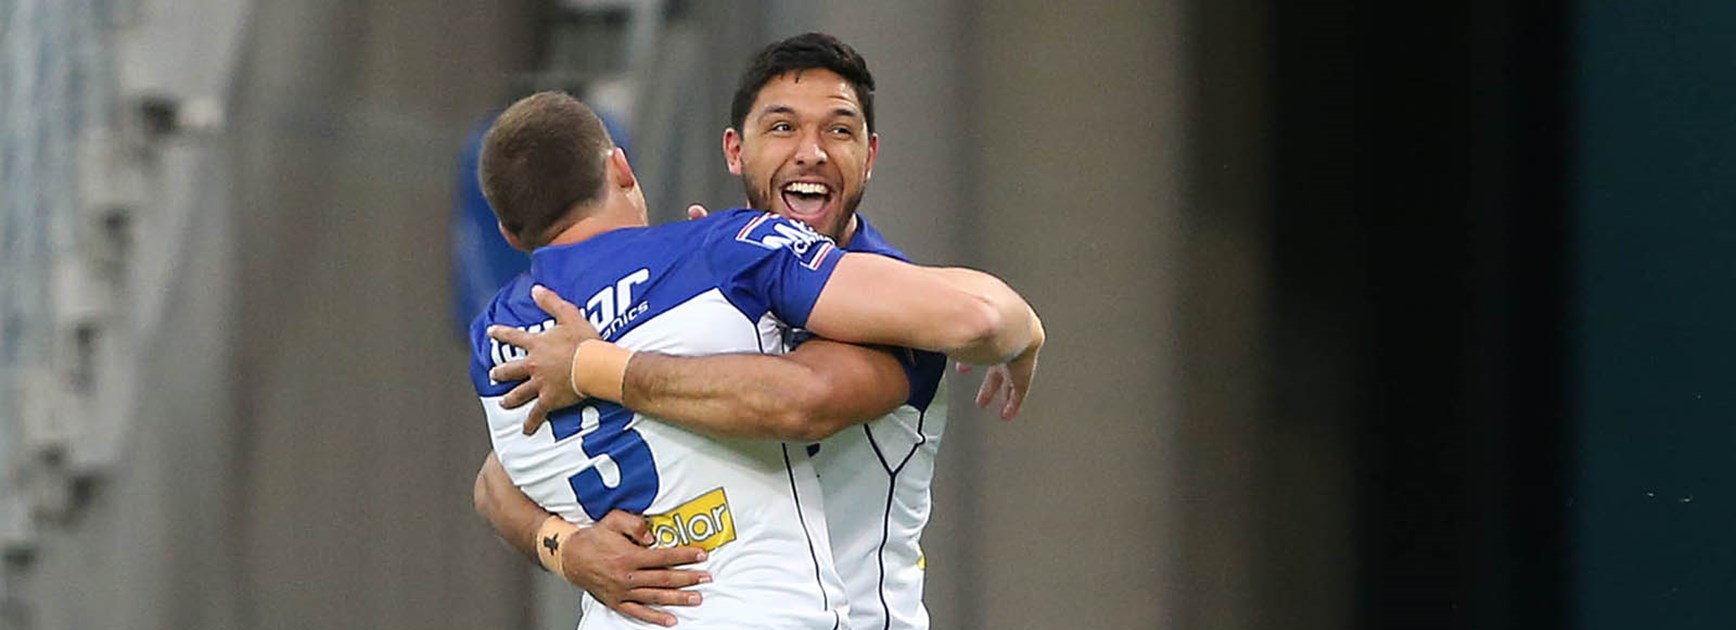 Bulldogs celebrate a try against the Wests Tigers at ANZ Stadium in Round 10.